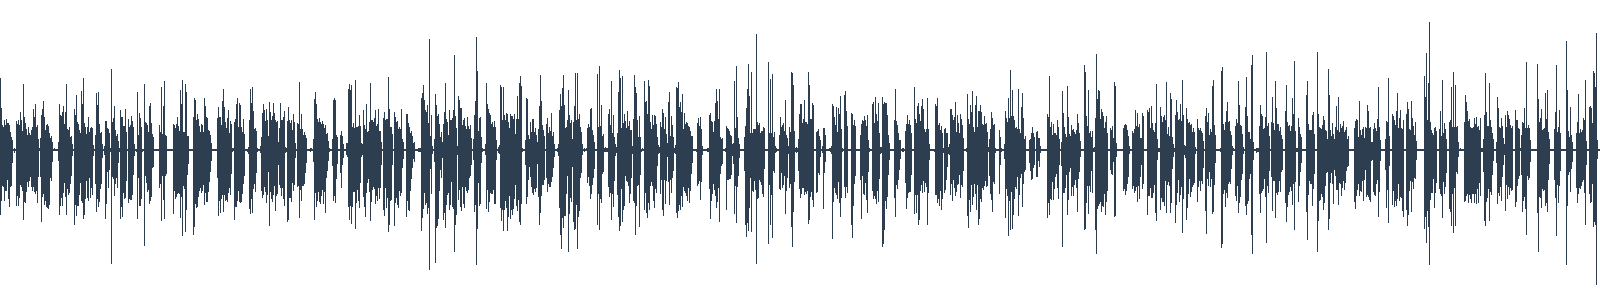 Do vody waveform